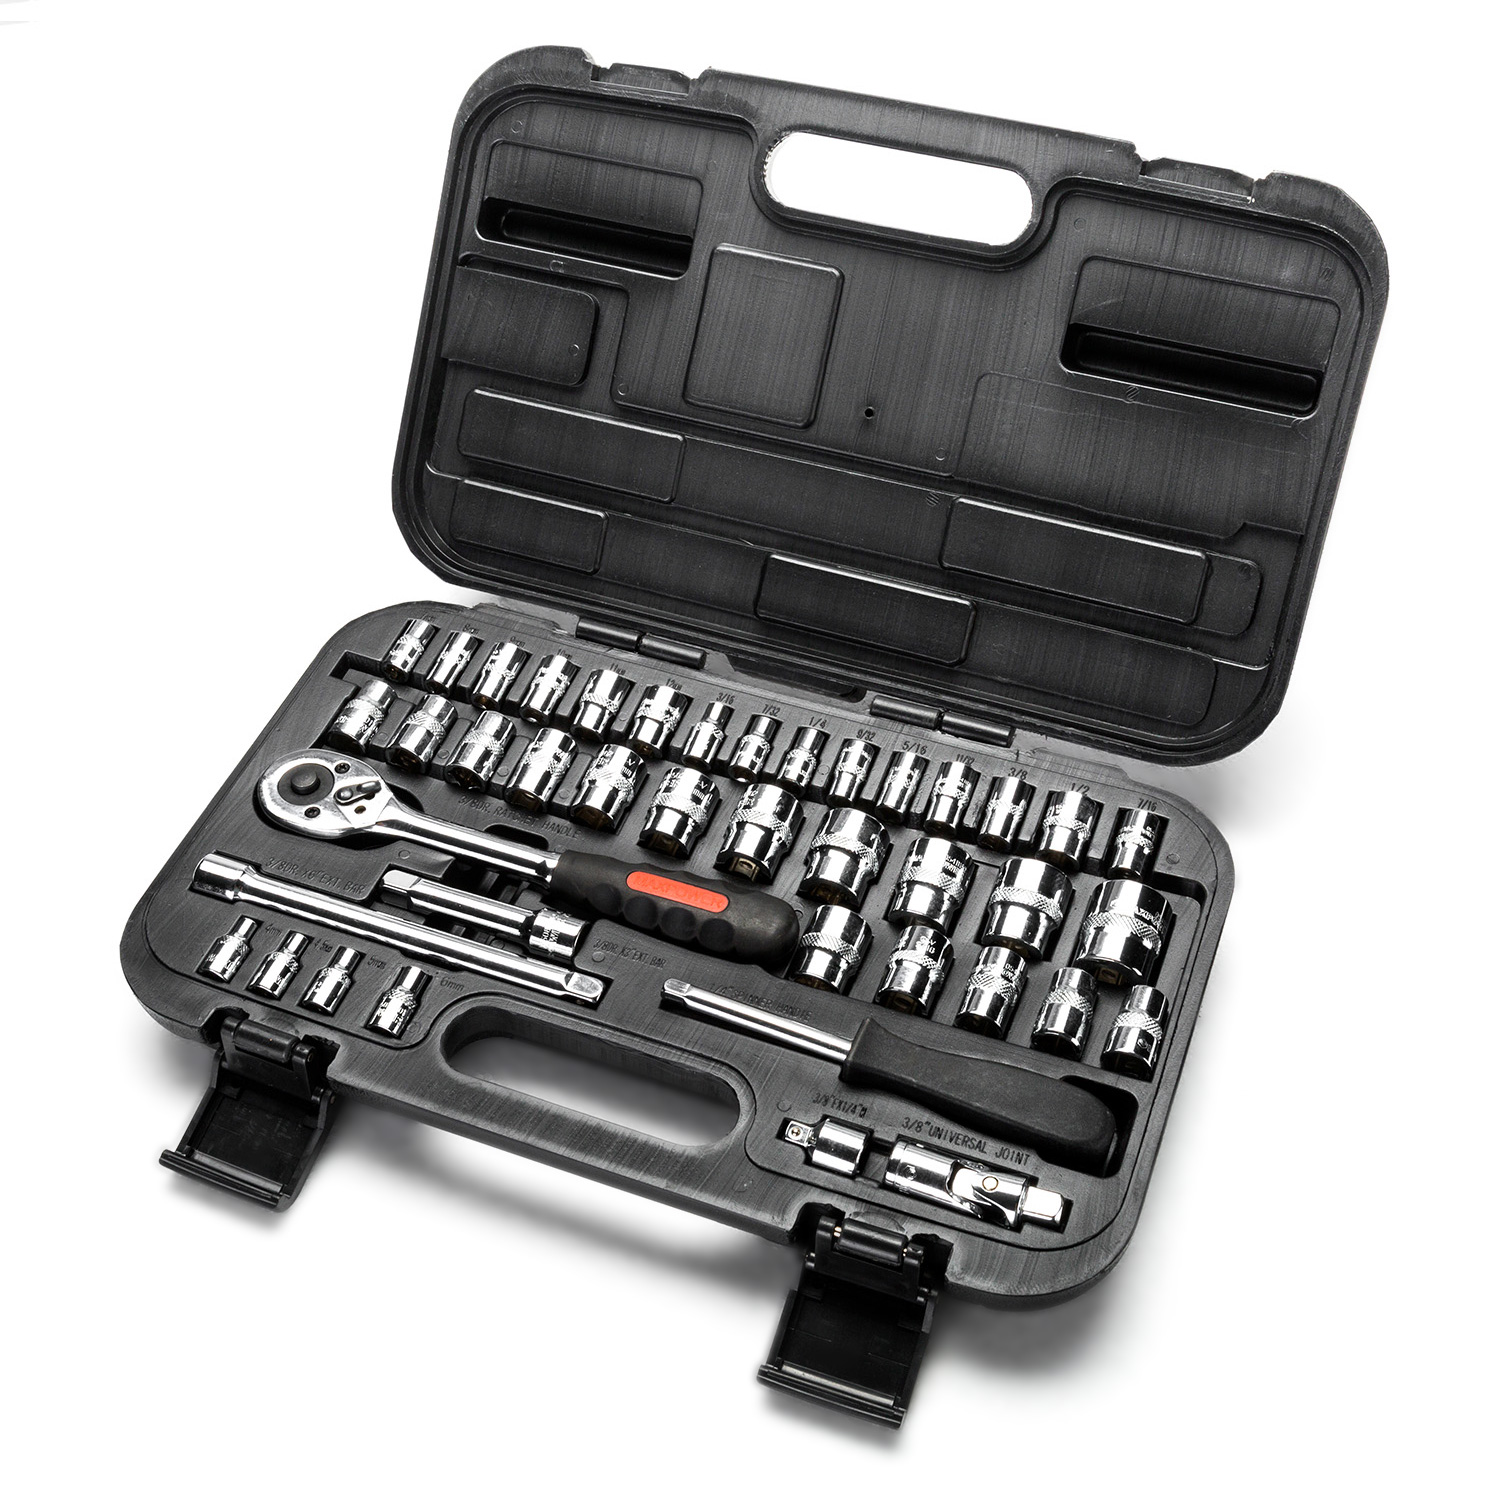 MAXPOWER 42-Piece 1 4'& 3 8'Dr. Socket Wrench Set With Included Sockets, Ratchet Handle, Extension Bars,... by